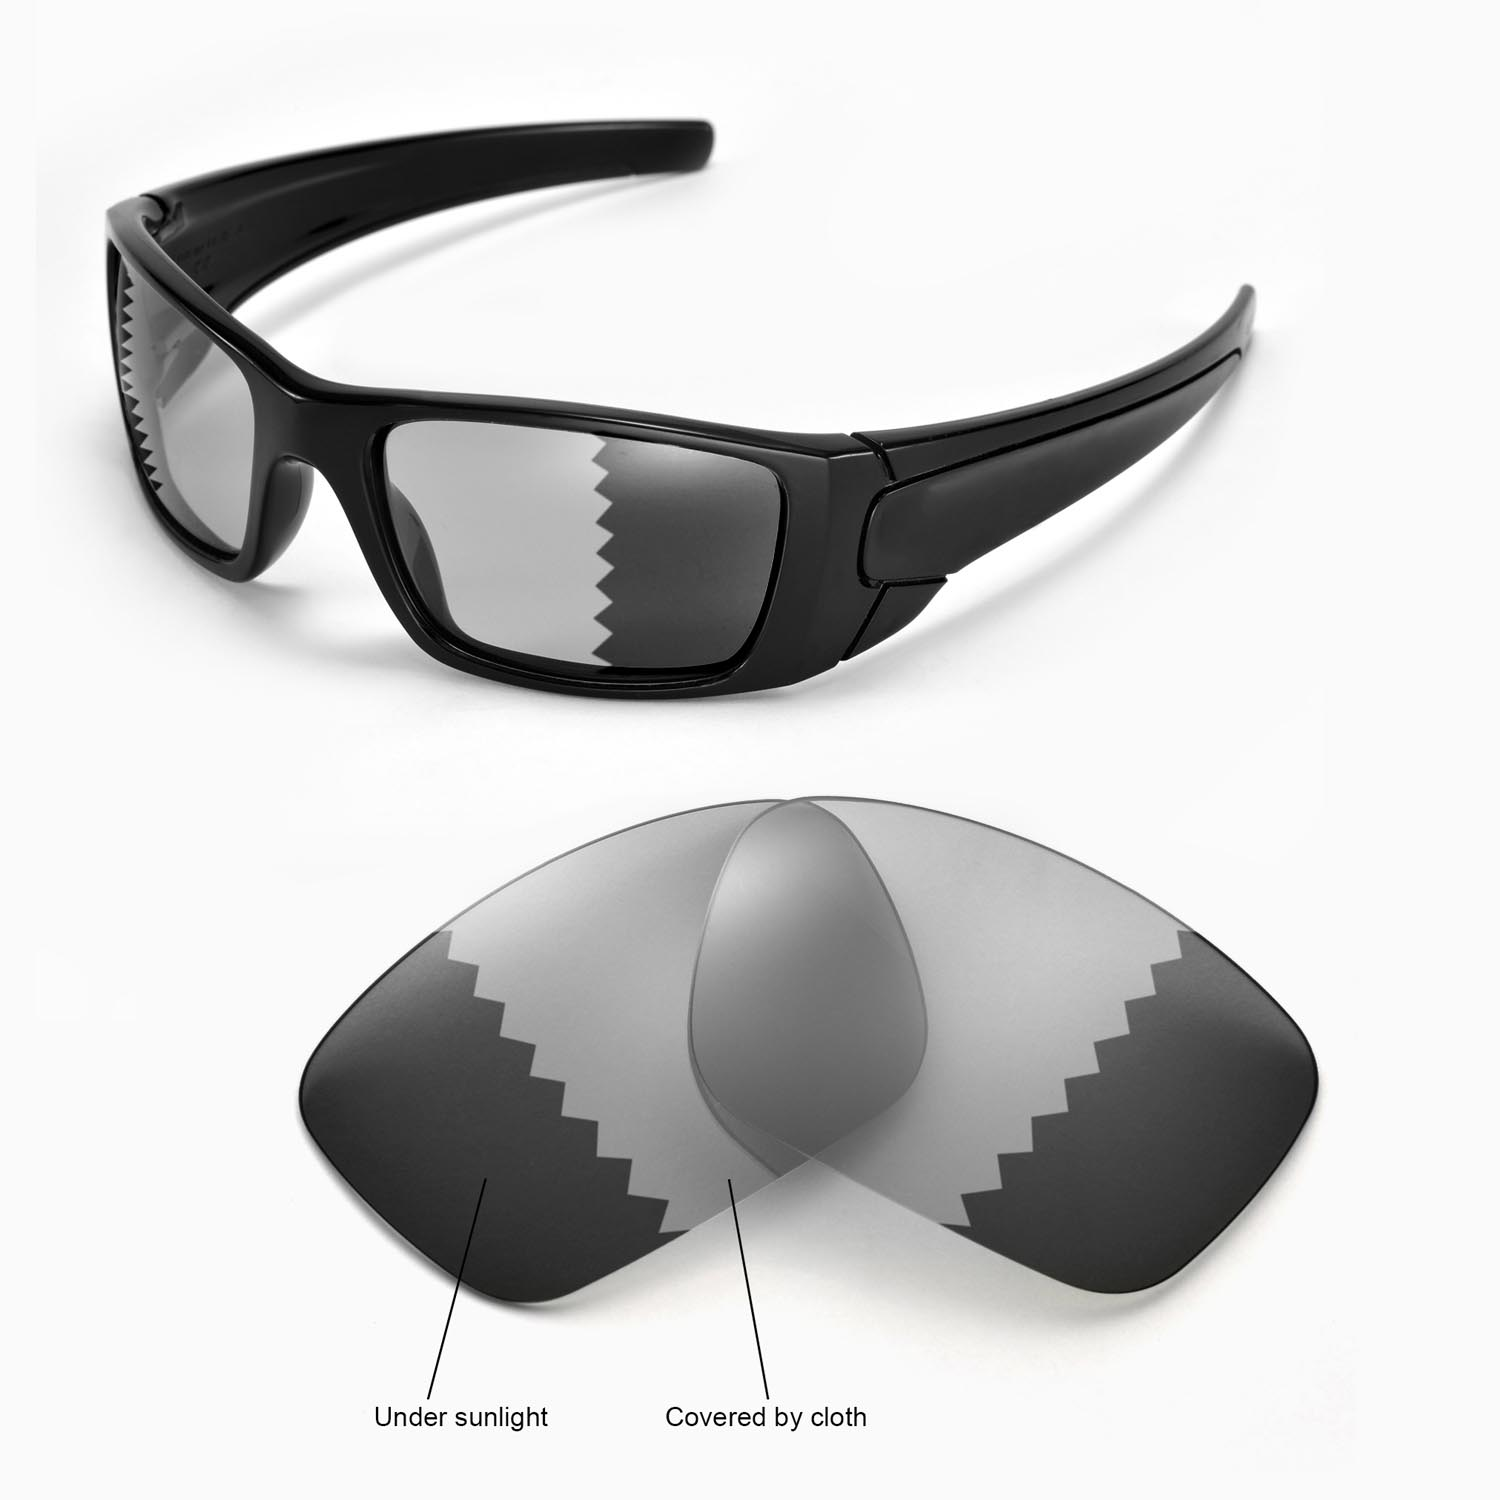 578e896f53 Details about New Walleva Polarized Transition Photochromic Lenses For  Oakley Fuel Cell